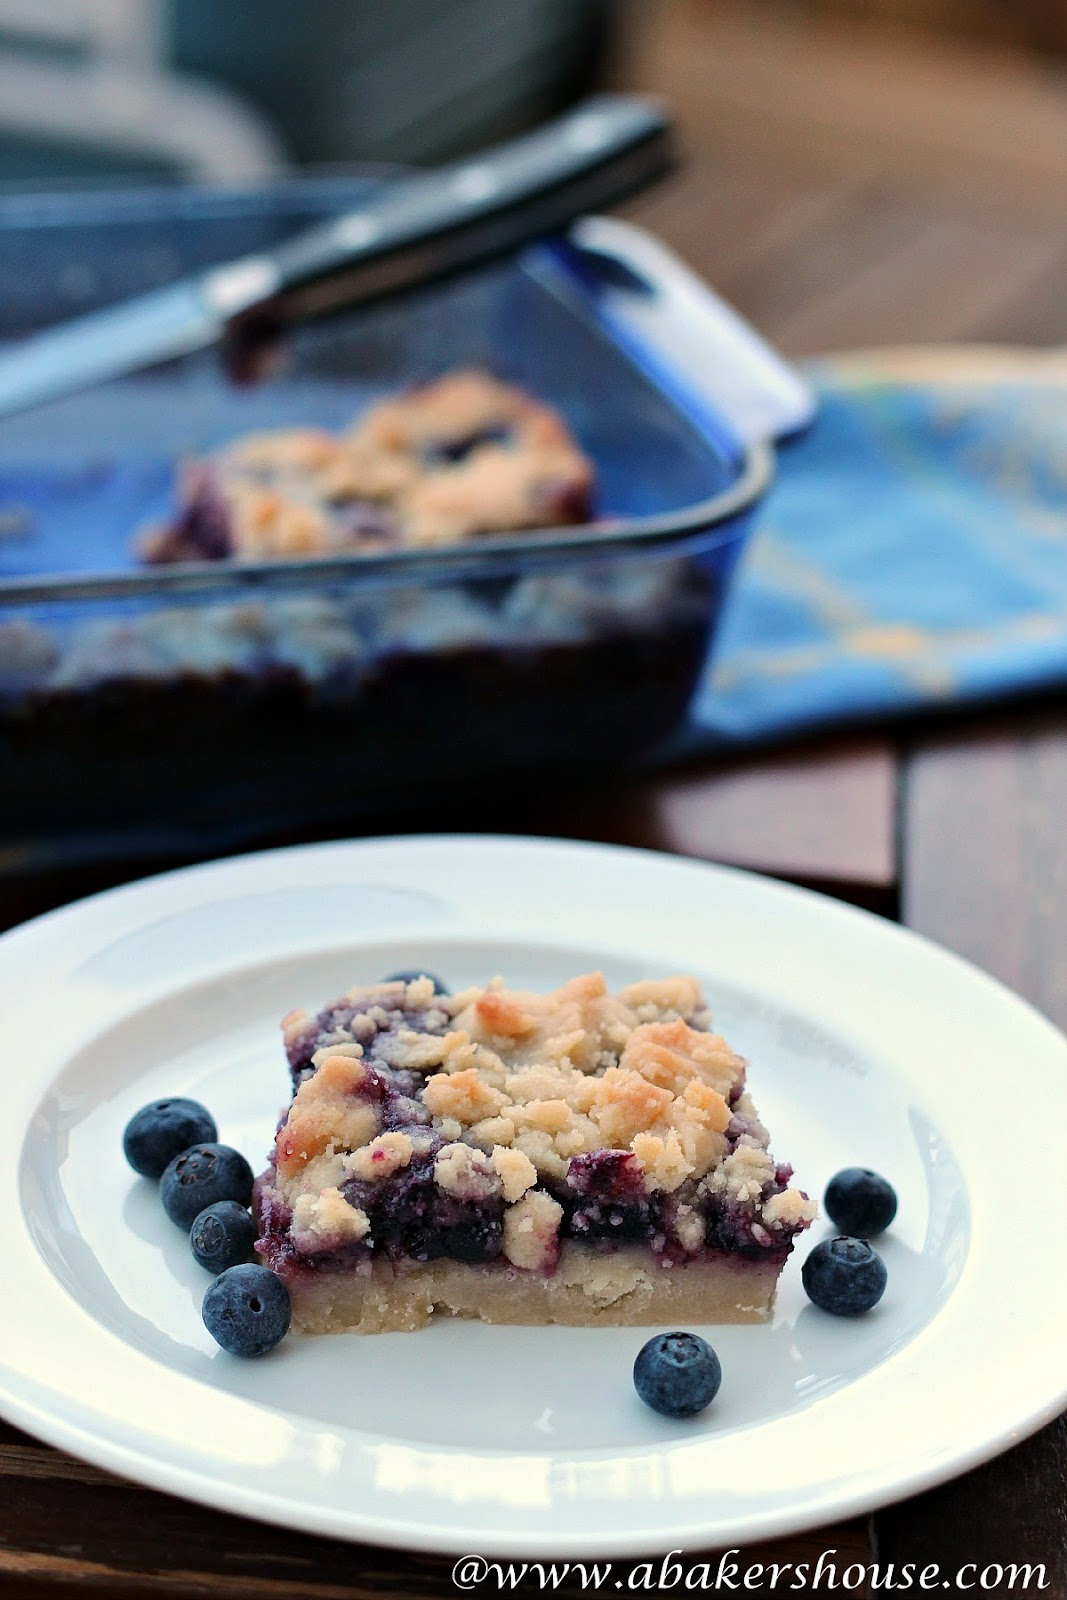 Blueberry squares from Holly at A Baker's House